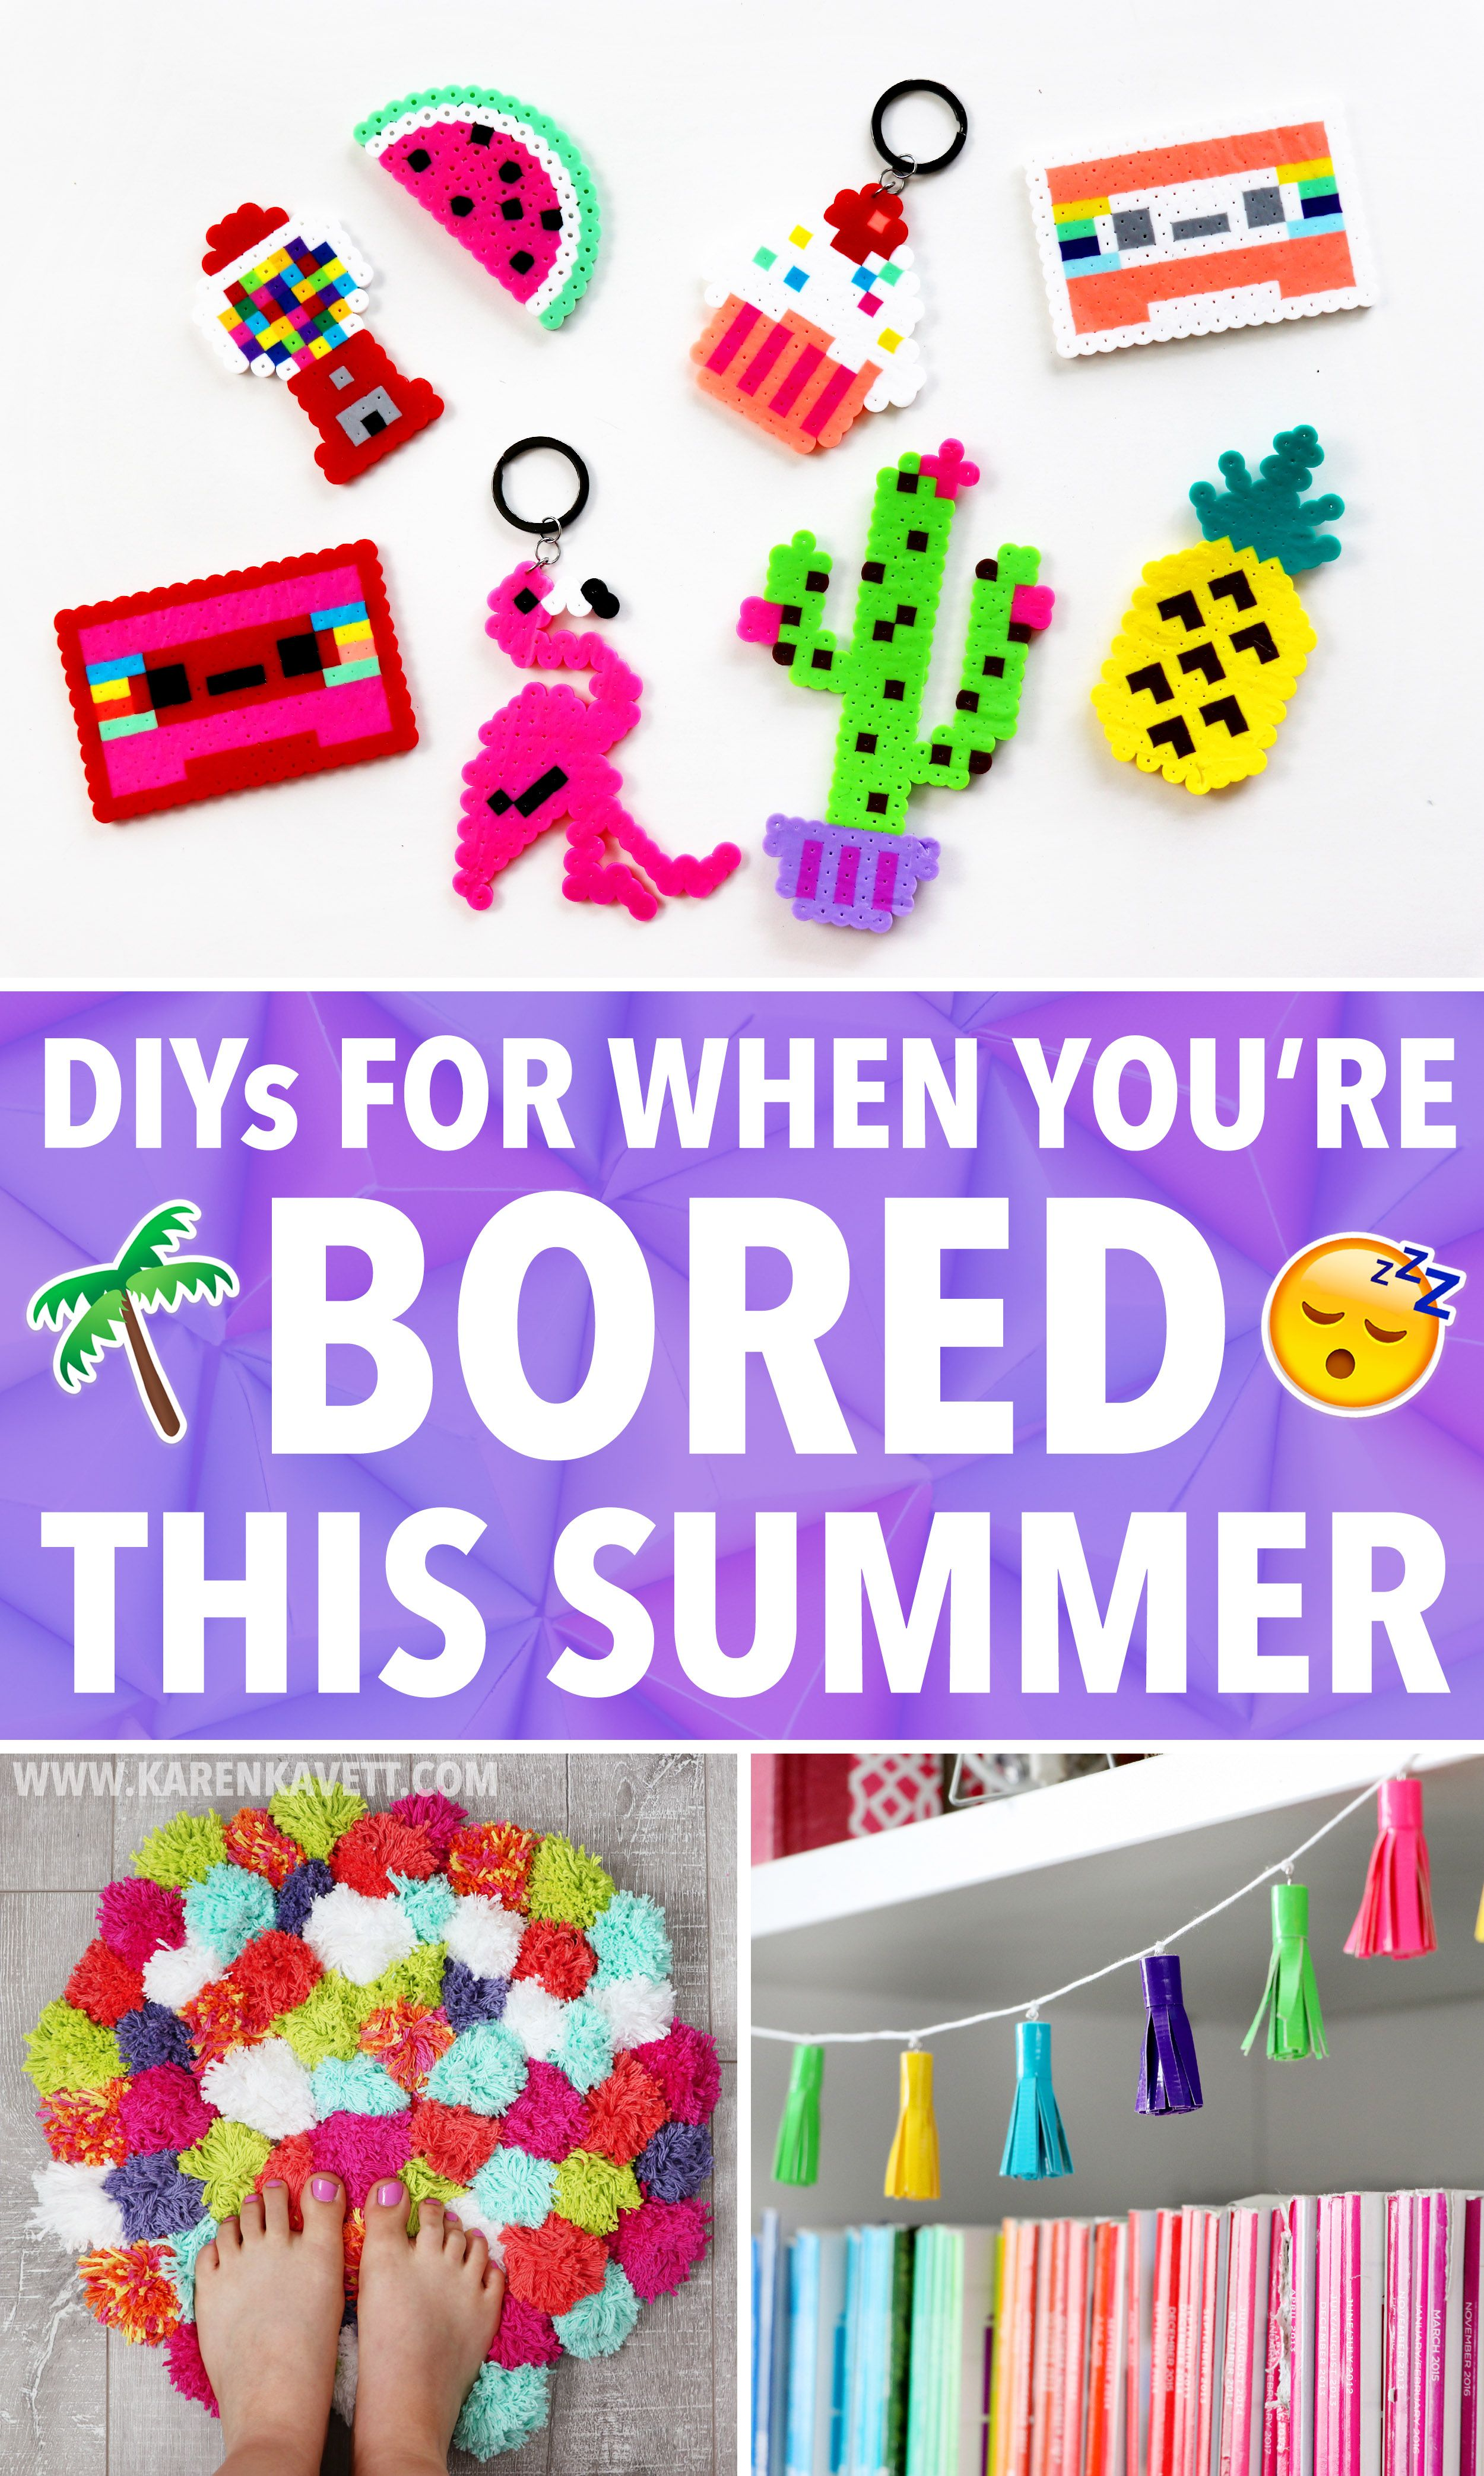 Easy DIY Ideas For When You're Bored This Summer! Karen